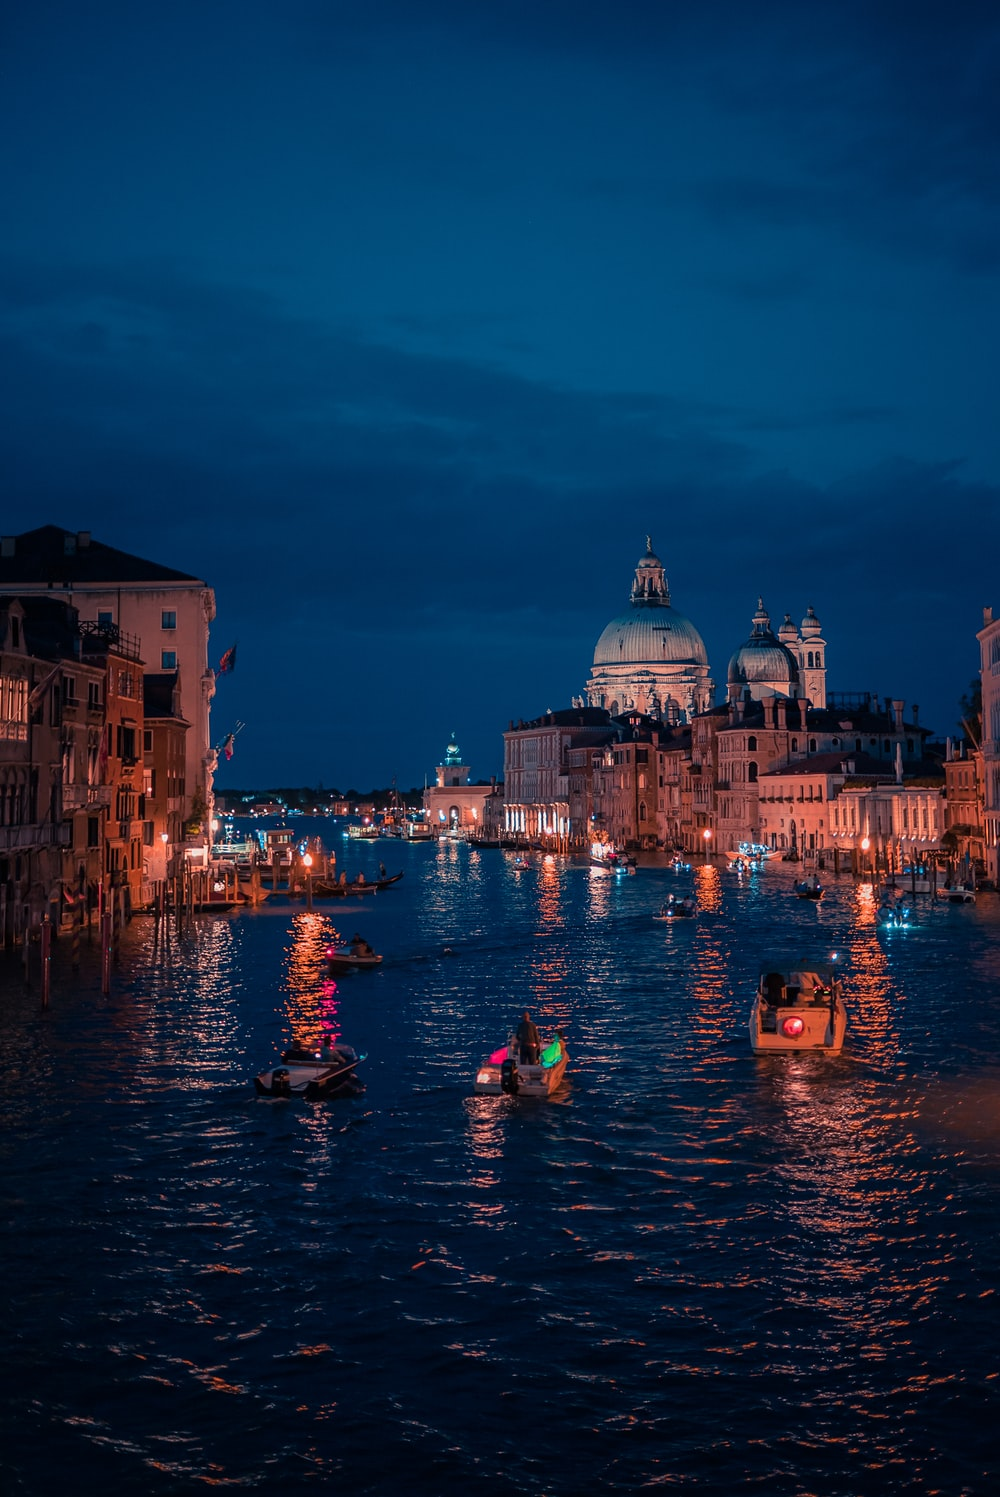 people riding on boat on river near buildings during night time